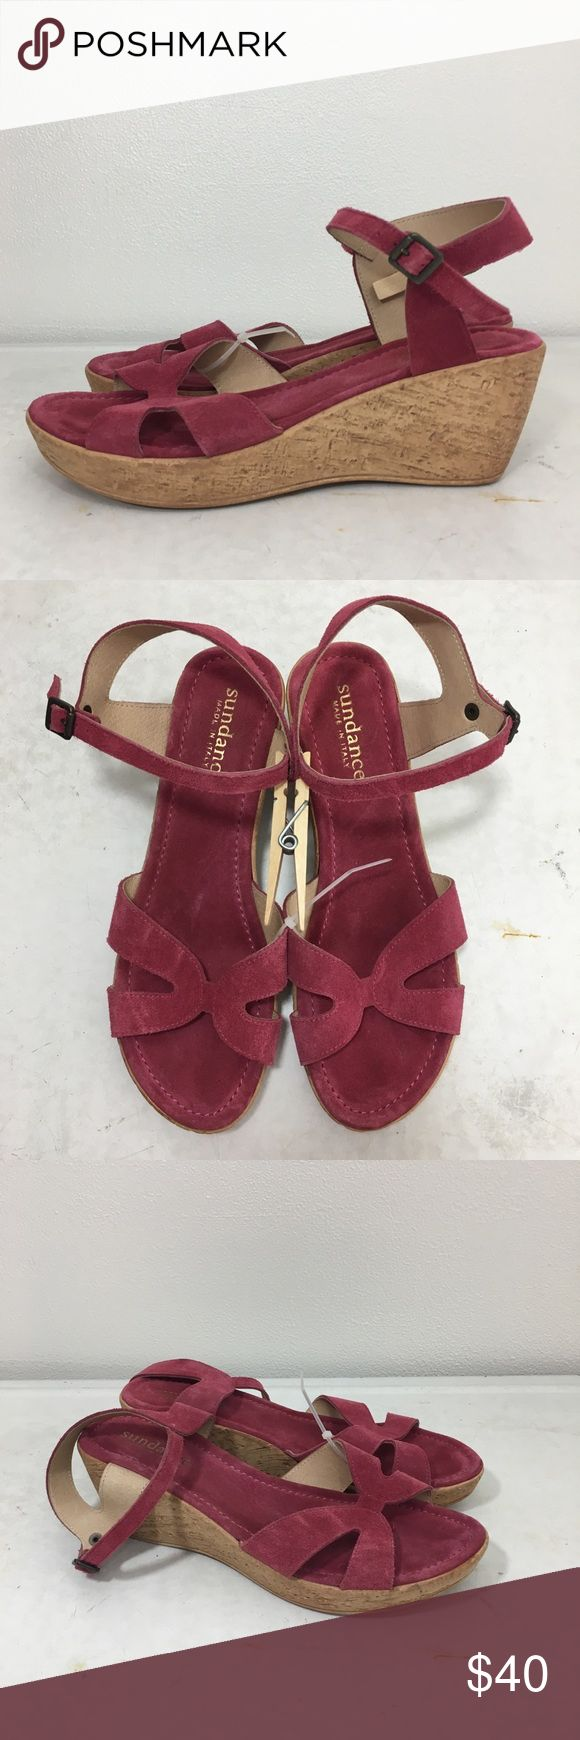 🆕 Listing!  Sundance Wedge Sandals Raspberry genuine suede upper in a criss cross vamp.  Sling backs with antiqued gunmetal adjustable buckle.  Store model.  Very sweet and feminine.  Man made cork-look platform wedge sole.  In excellent condition.  Size not labeled.  Fit like an 8.5. Sundance Shoes Sandals